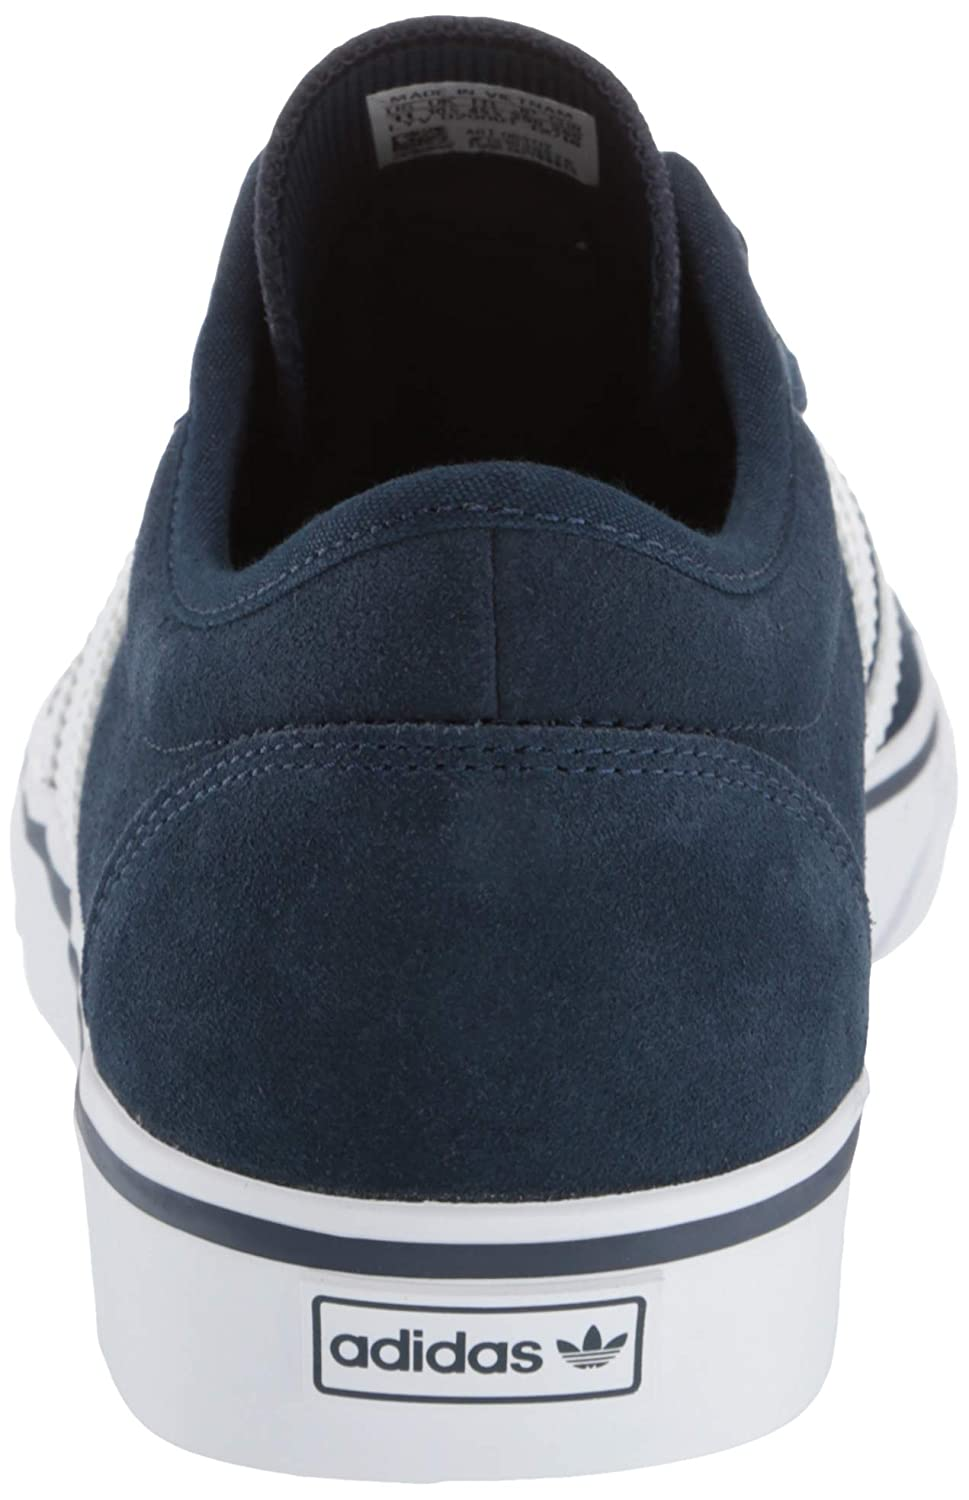 new styles 8c67b 49dbf Amazon.com   adidas Men s Adi-Ease Lace Up Sneaker   Fashion Sneakers